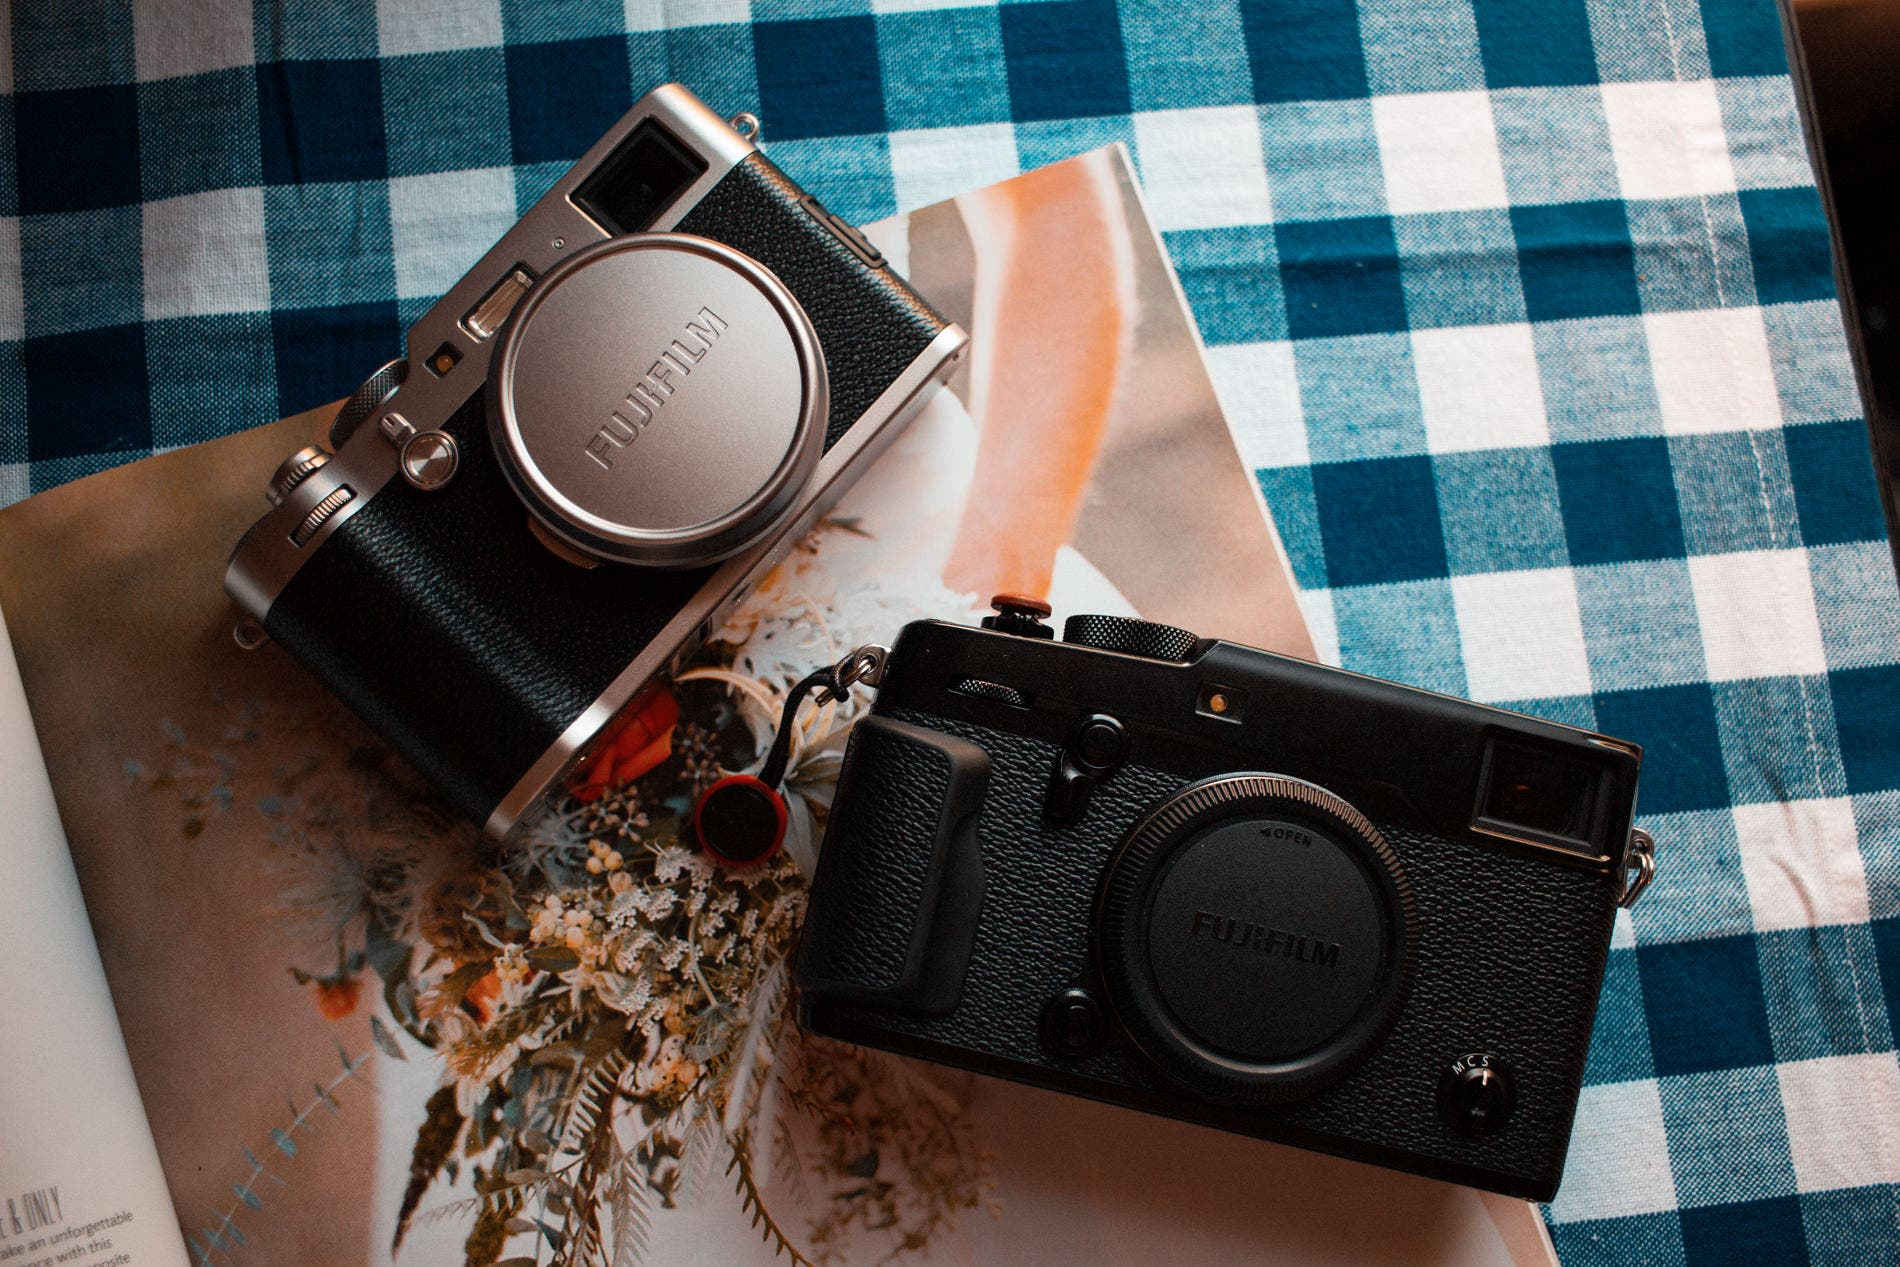 Which One: Fujifilm X100F or Fujifilm X-Pro2 with Fujifilm 23mm F2?